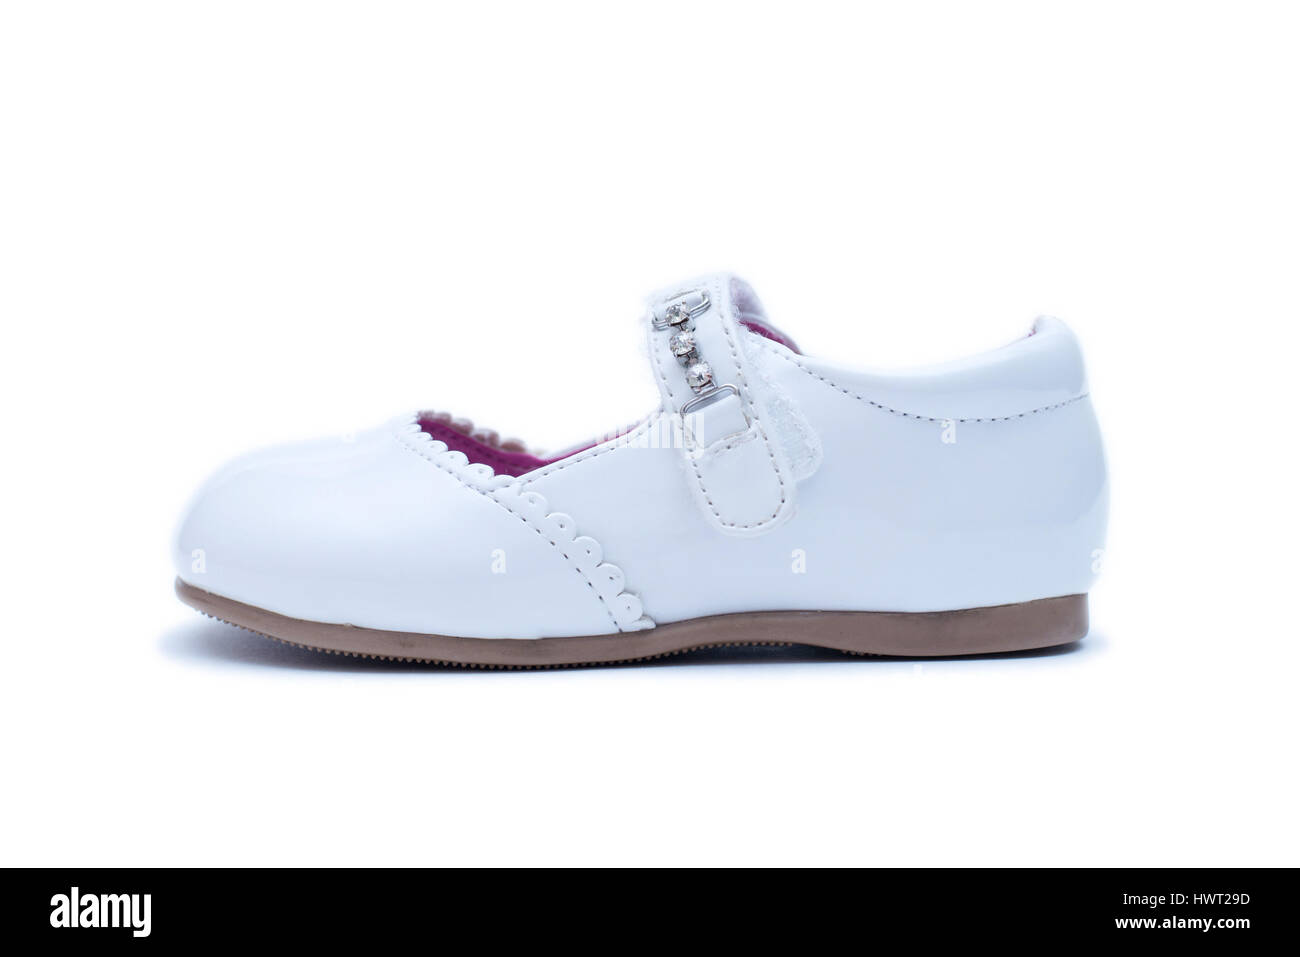 Weiße Kinderschuhe Lace Pumps Stockfotos And Lace Pumps Bilder Seite 3 Alamy